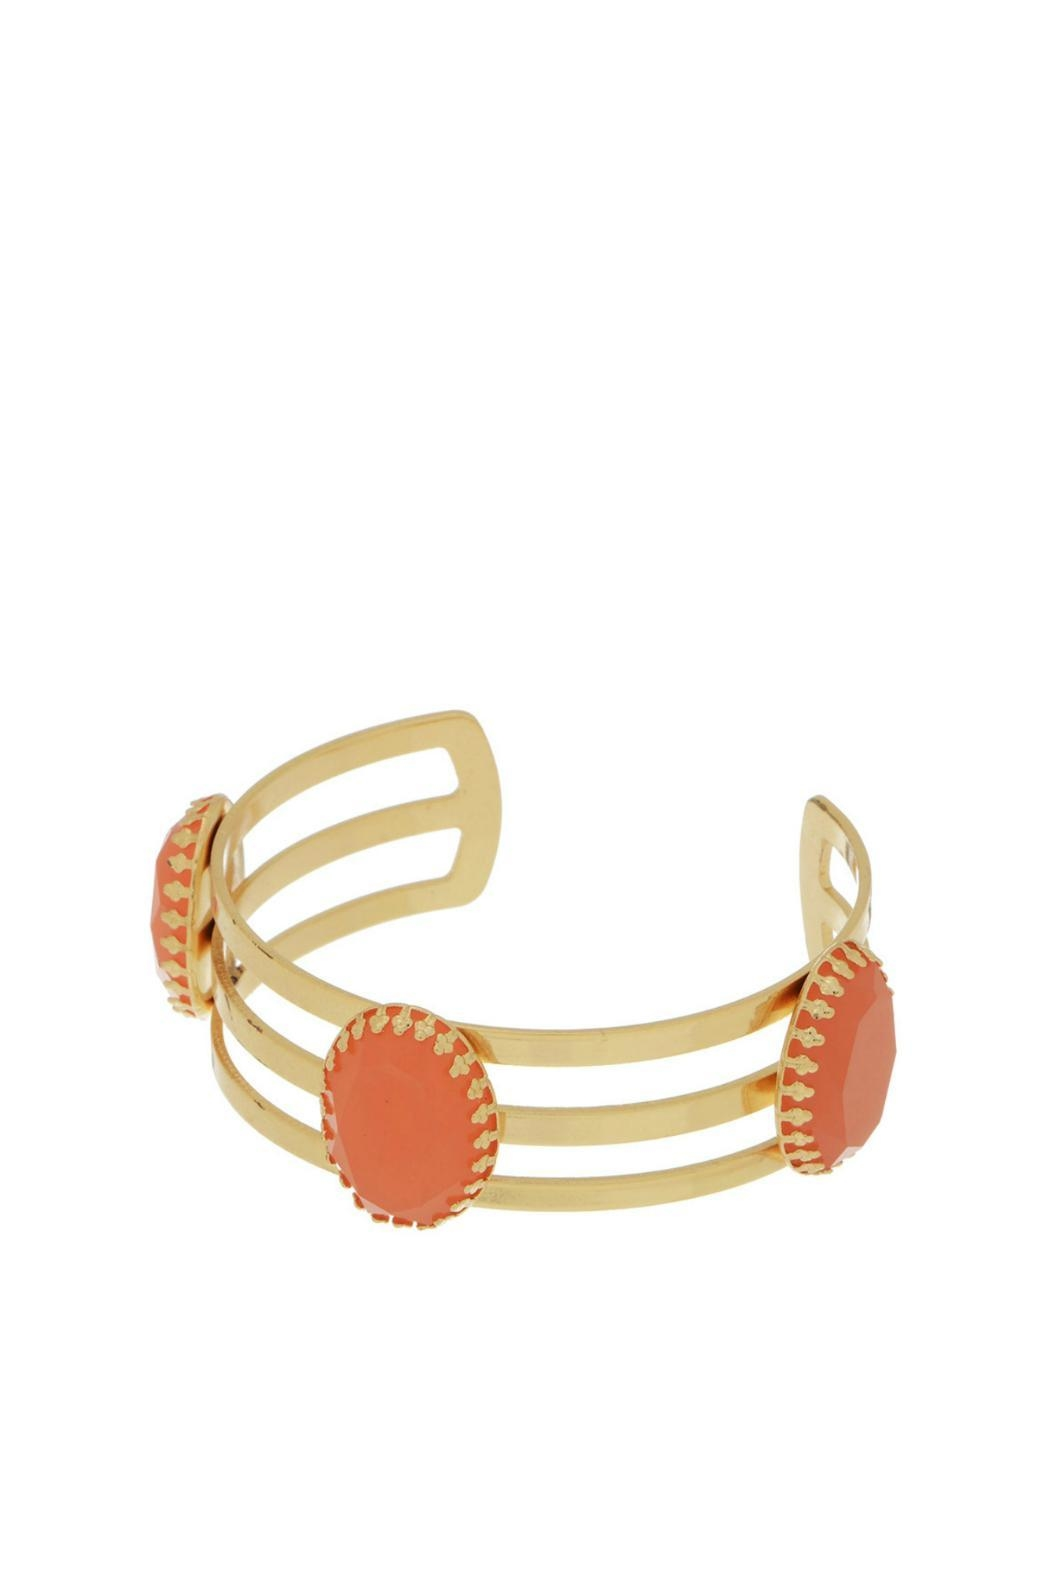 Mimi's Gift Gallery Gold Coral Cuff - Main Image